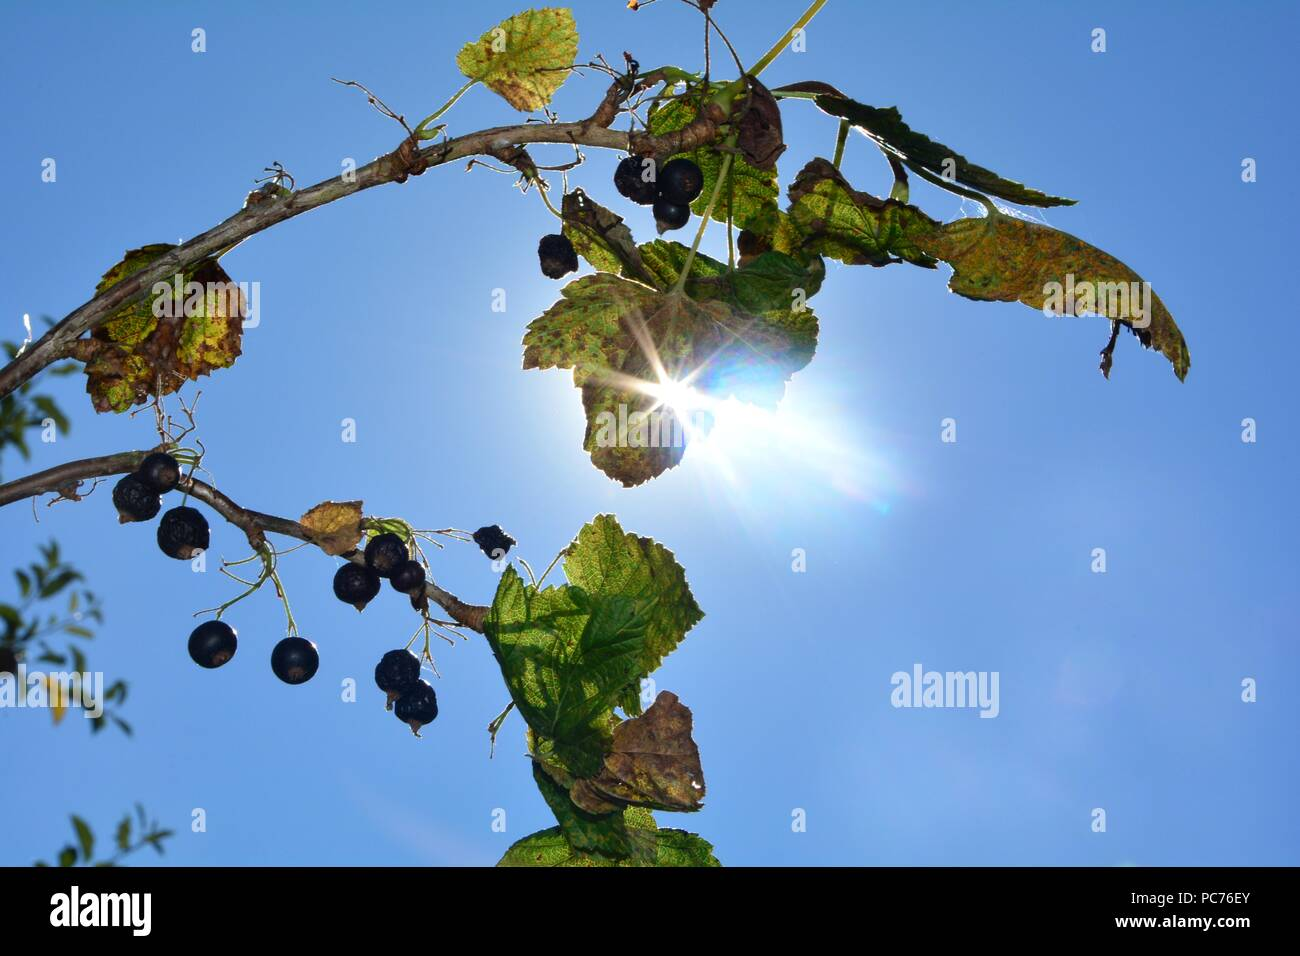 Dried berries with brown leaves on the branch in front of blue sky with sunray - Stock Image